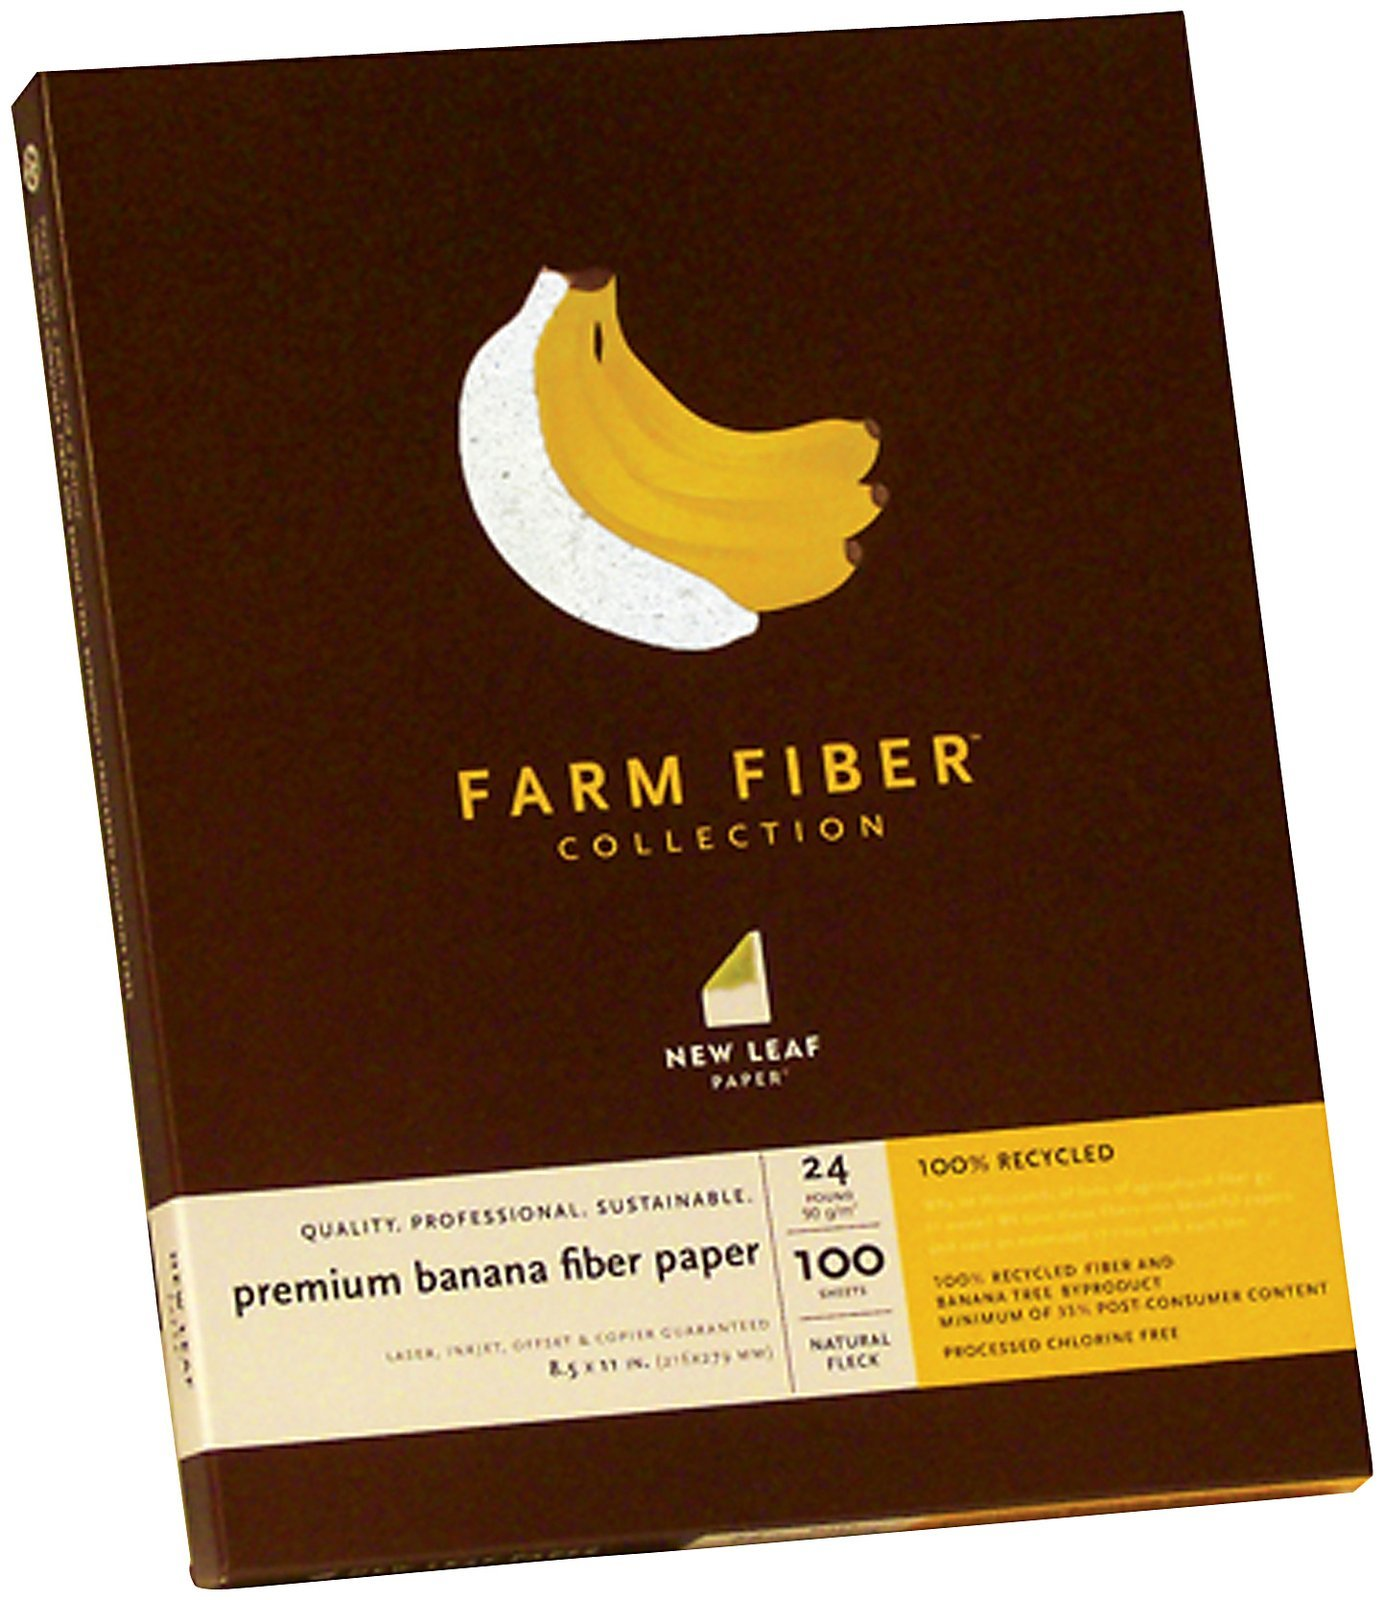 New Leaf Premium Banana Fiber Paper, 100% Recycled, Natural Fleck, 24-Lb, 8.5 x 11 Inches, 100 Count (612-6000) by New Leaf